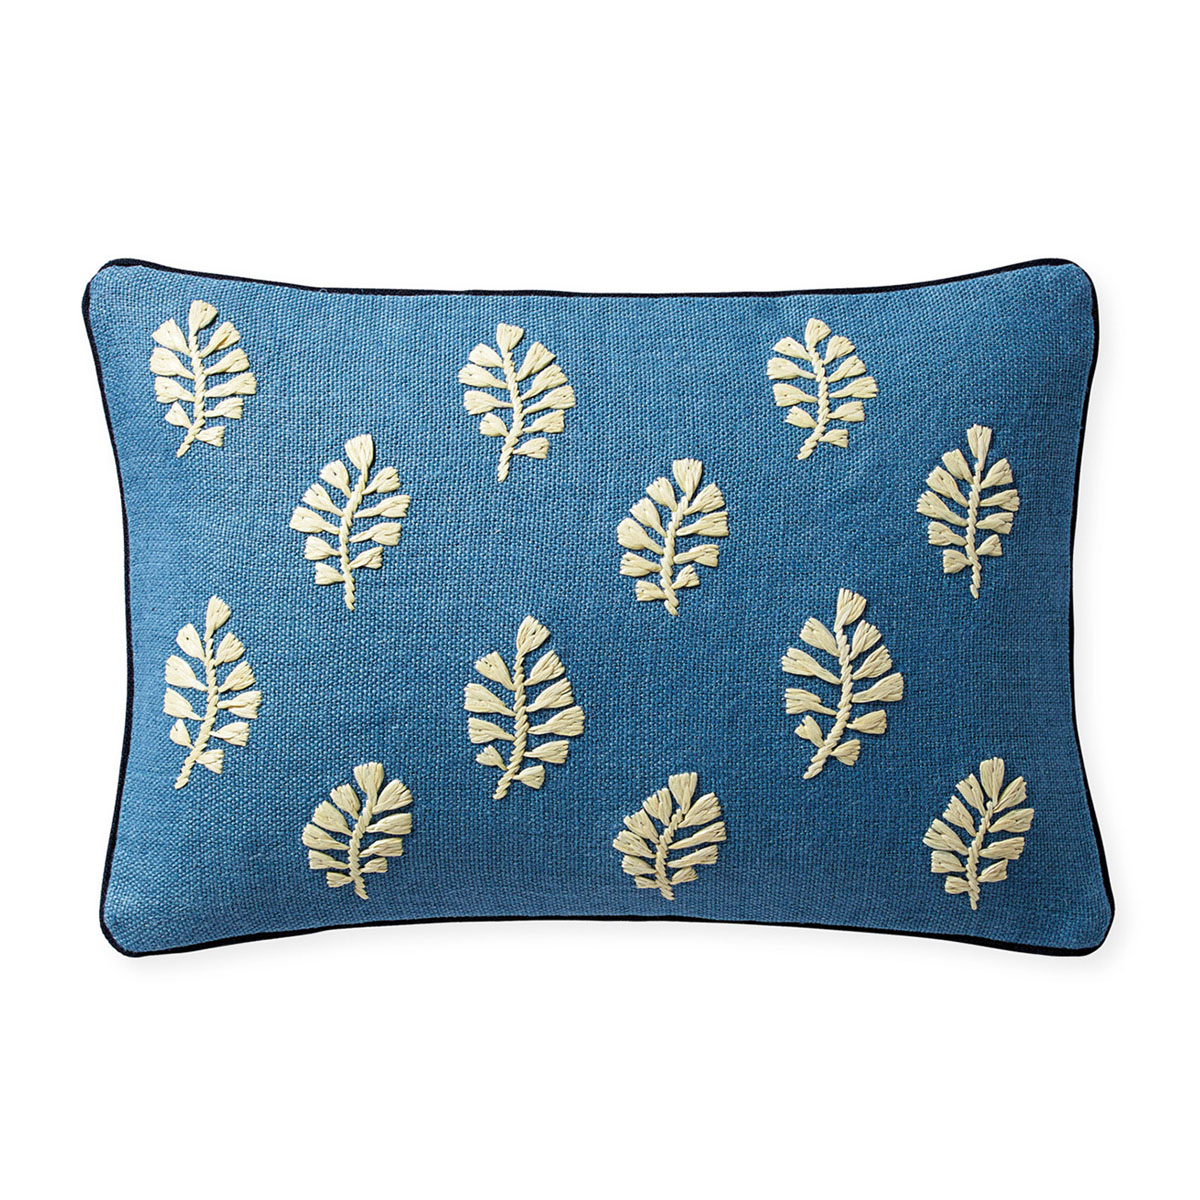 serena and lily blossom pillow cover.jpg